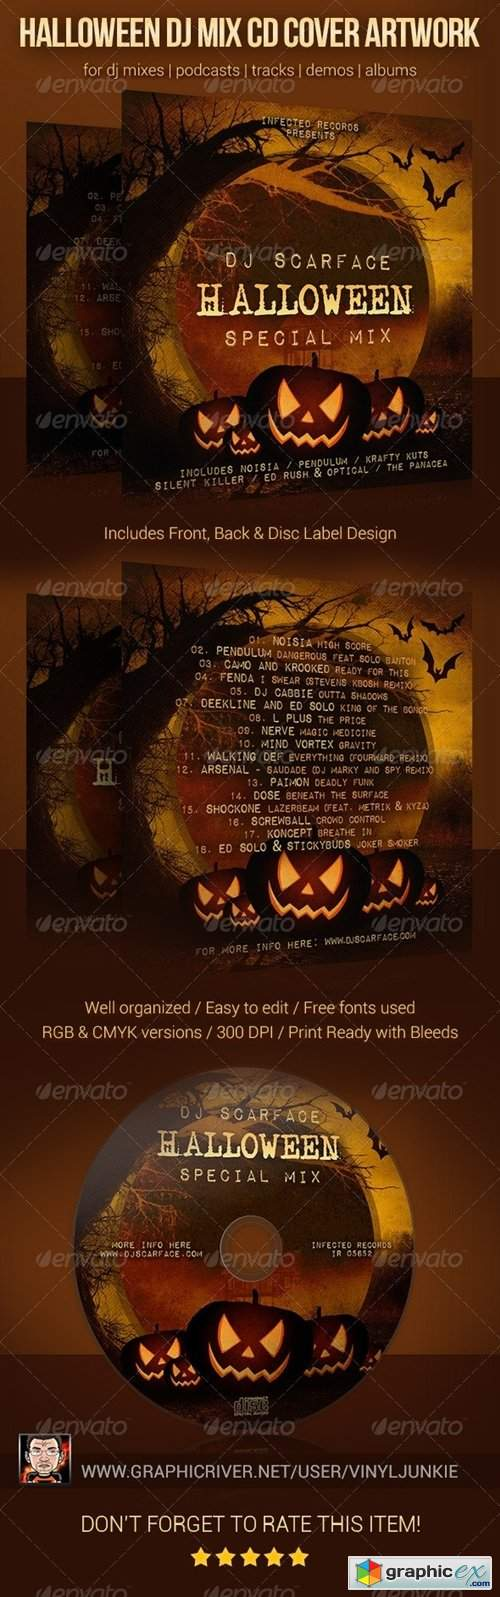 Halloween DJ Mix CD Cover Artwork Template